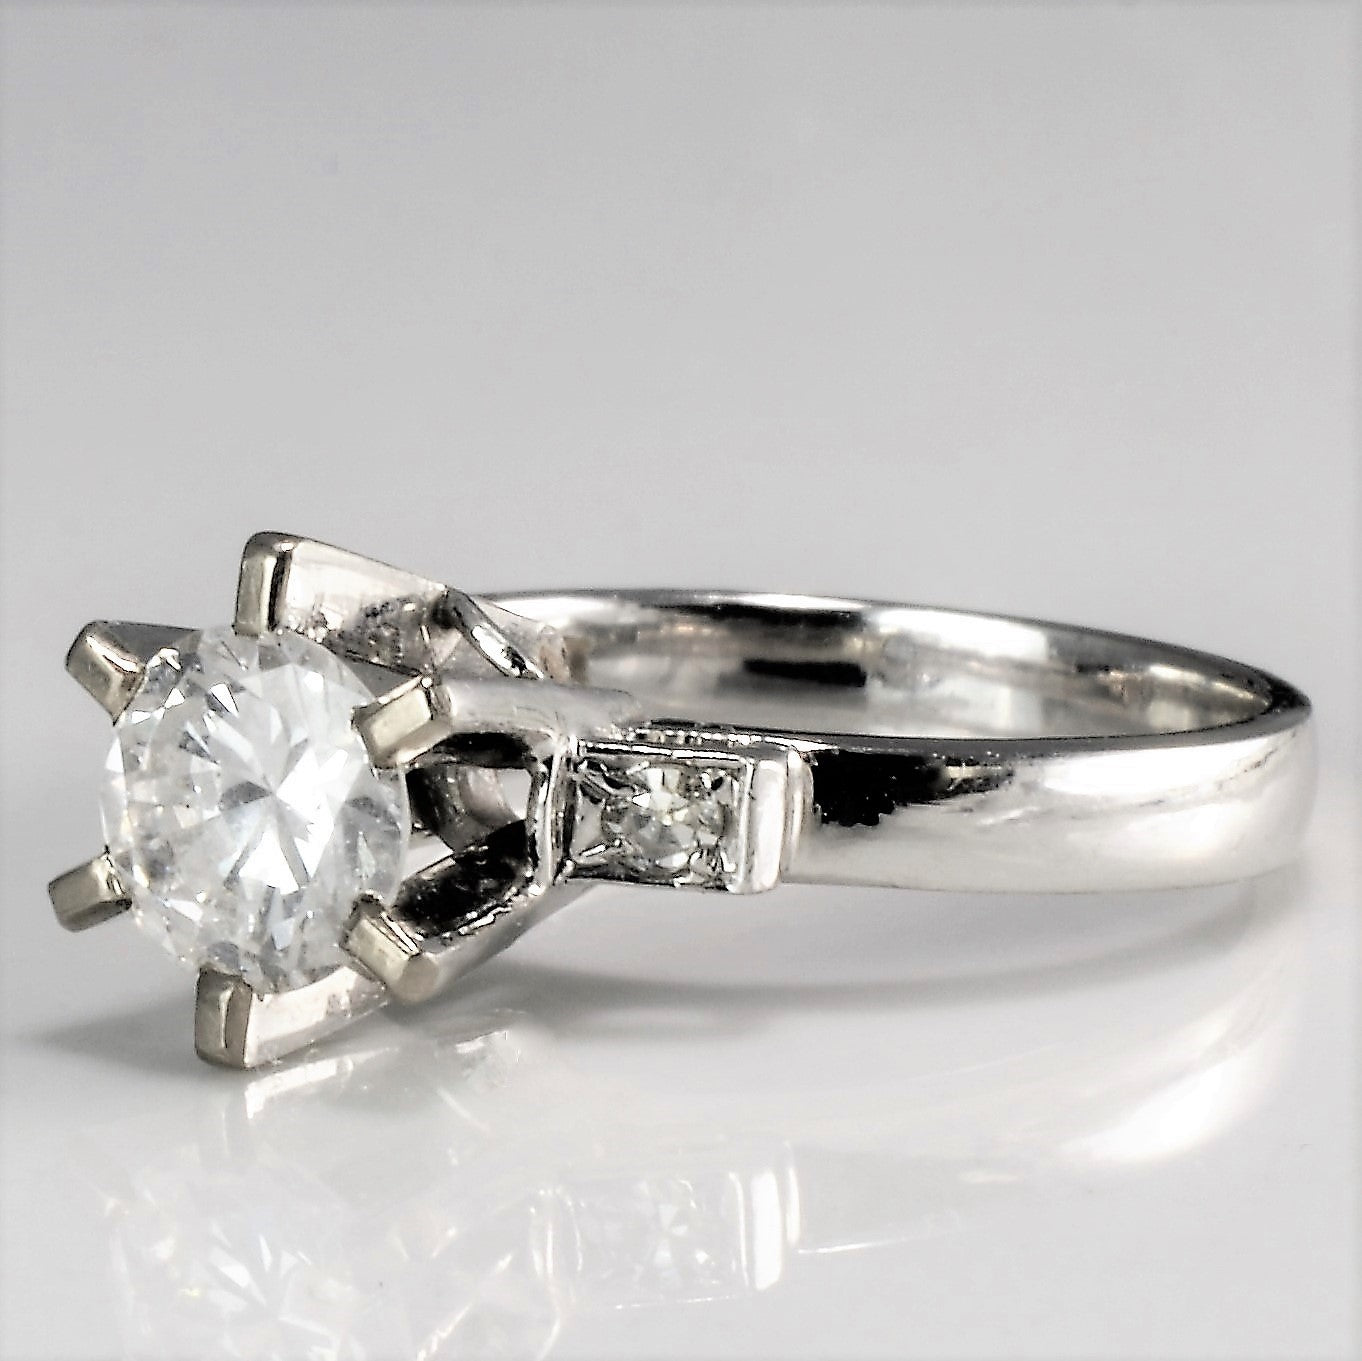 High Set Six Prong Diamond Engagement Ring | 0.66 ctw, SZ 3.5 |